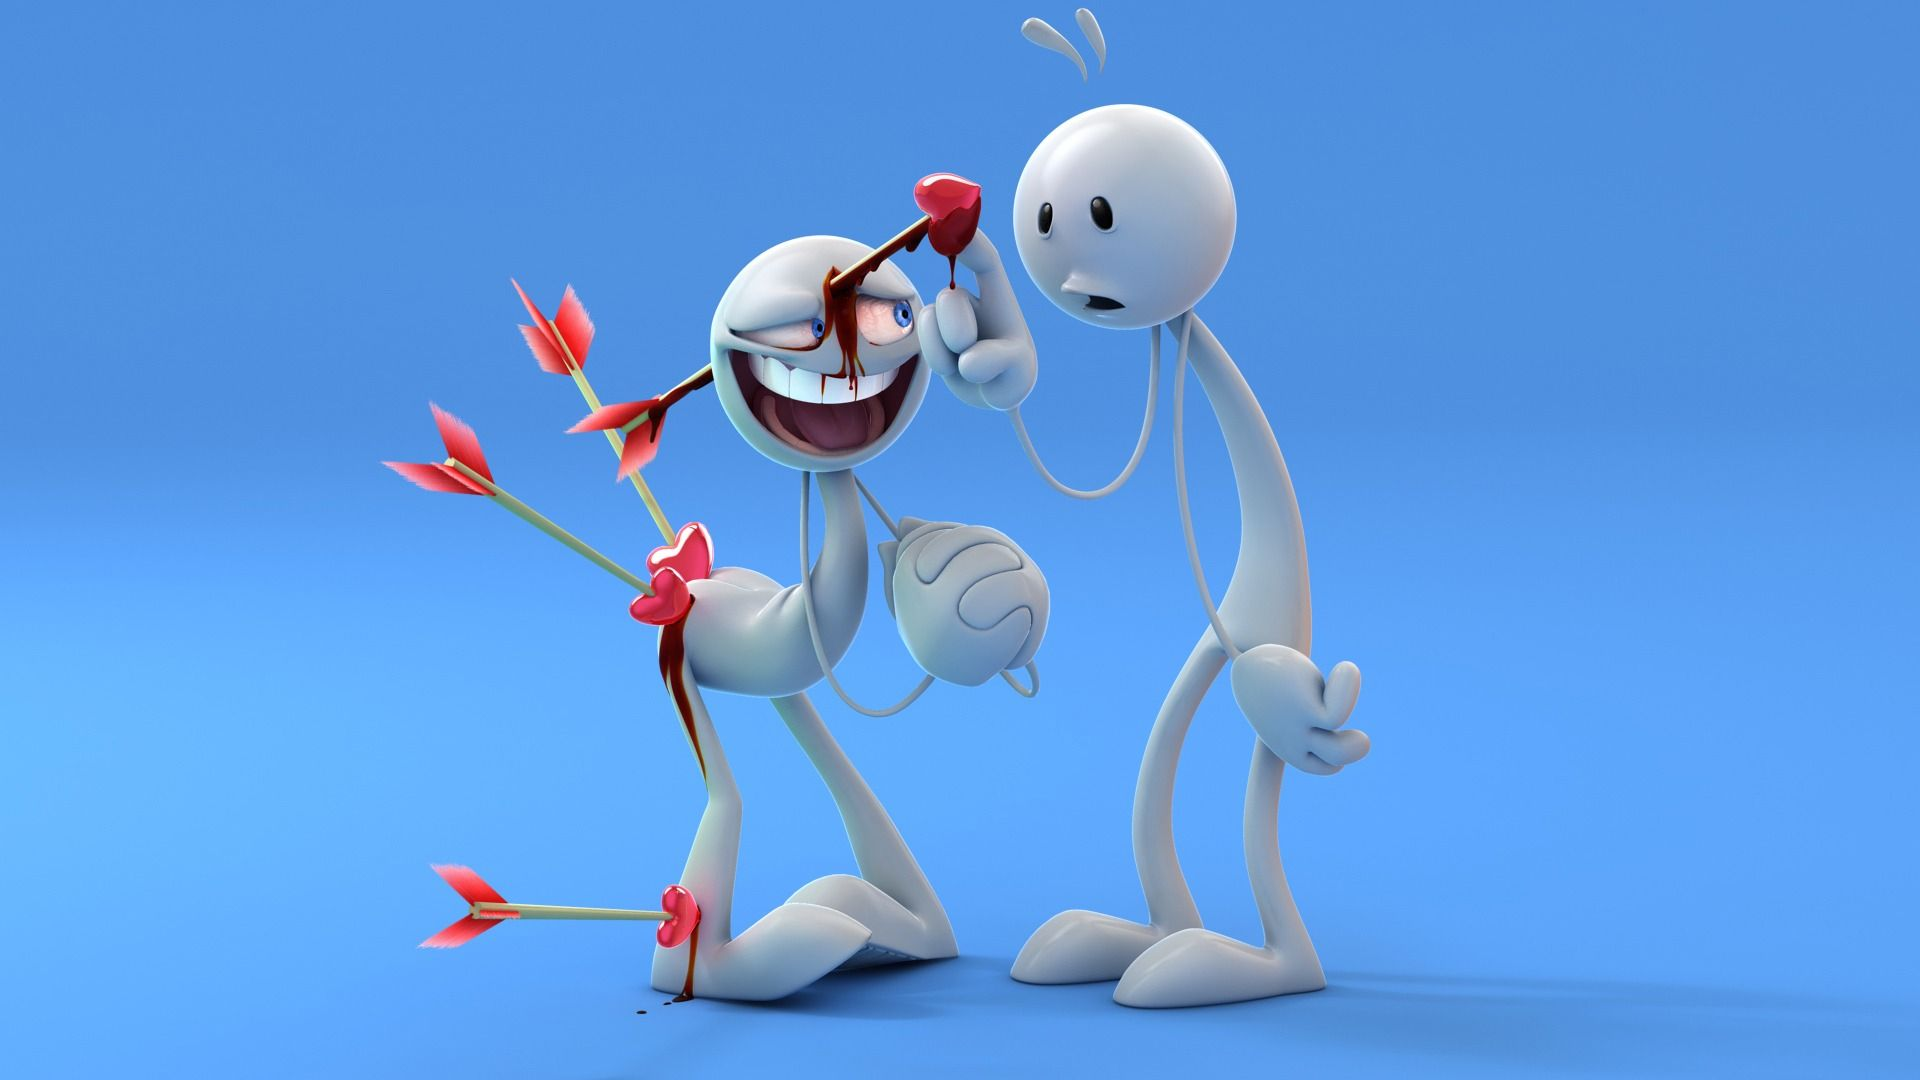 Cartoon Funny Wallpapers Top Free Cartoon Funny Backgrounds